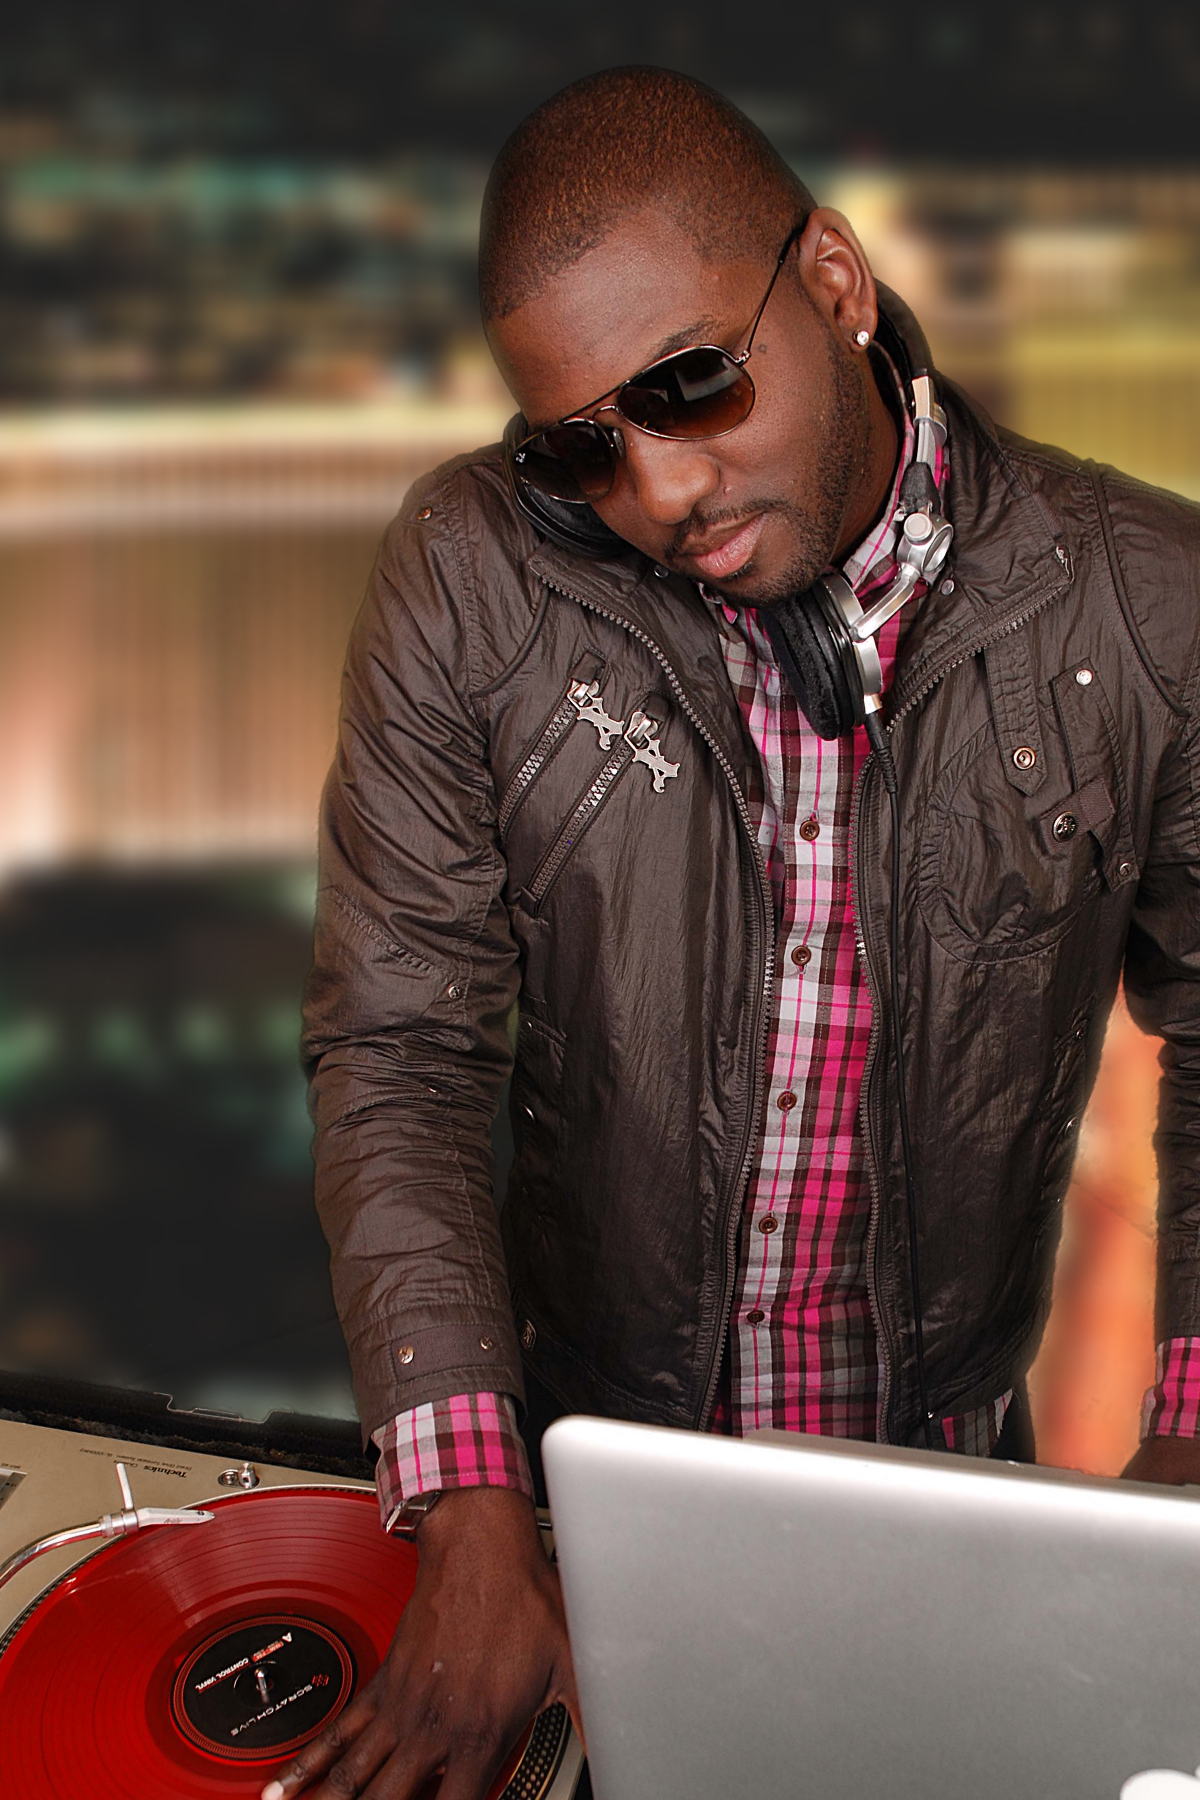 """Born in Hackensack and raised in Paterson, NJ, Daren """"DJ Poun"""" Smith is the son of a gospel singing mother and a jazz musician father. It was this early childhood exposure to 70's soul, funk, jazz, R&B, and disco that helped shape Poun's natural instinct for music awareness and knowledge.. While still in grammar school, Poun', along with his brother DJ Jus, were able to secure a weekly residency gig at the local Skating Rink / dance club known as """"Skater's World"""". Hundreds of young adults would flock to the club on a weekly basis to party with Paterson, New Jersey's favorite sons.  DJ Poun's career took a shift into high-gear when his DJ talents were discovered by management at Jay-Z's flagship establishment, the 40/40 Club New York City. Claiming residency in November 2004, DJ Poun' transformed the musical soundscape of the sports bar, quickly turning it into one of the hottest nightclubs in NYC. Following his success in New York City, Jay-Z and the 40/40 Club management offered DJ Poun' residencies at each of their upcoming clubs, including Atlantic City and Las Vegas. Poun' has spun alongside nationally recognized DJ's such as Kid Capri, Funkmaster Flex, and DJ Clue, and has provided sounds for celebrity guests such as Kanye West, Alex Rodriguez, Beyonce, and Lebron James. From the streets of New York City, all the way to the bright lights of Las Vegas, DJ Poun' has yet to meet a crowd that he can't rock! With a distinguished passion for music and an incomparable drive for perfection, DJ Poun' will continue to raise the bar for club & mixtape DJ's for years to come."""